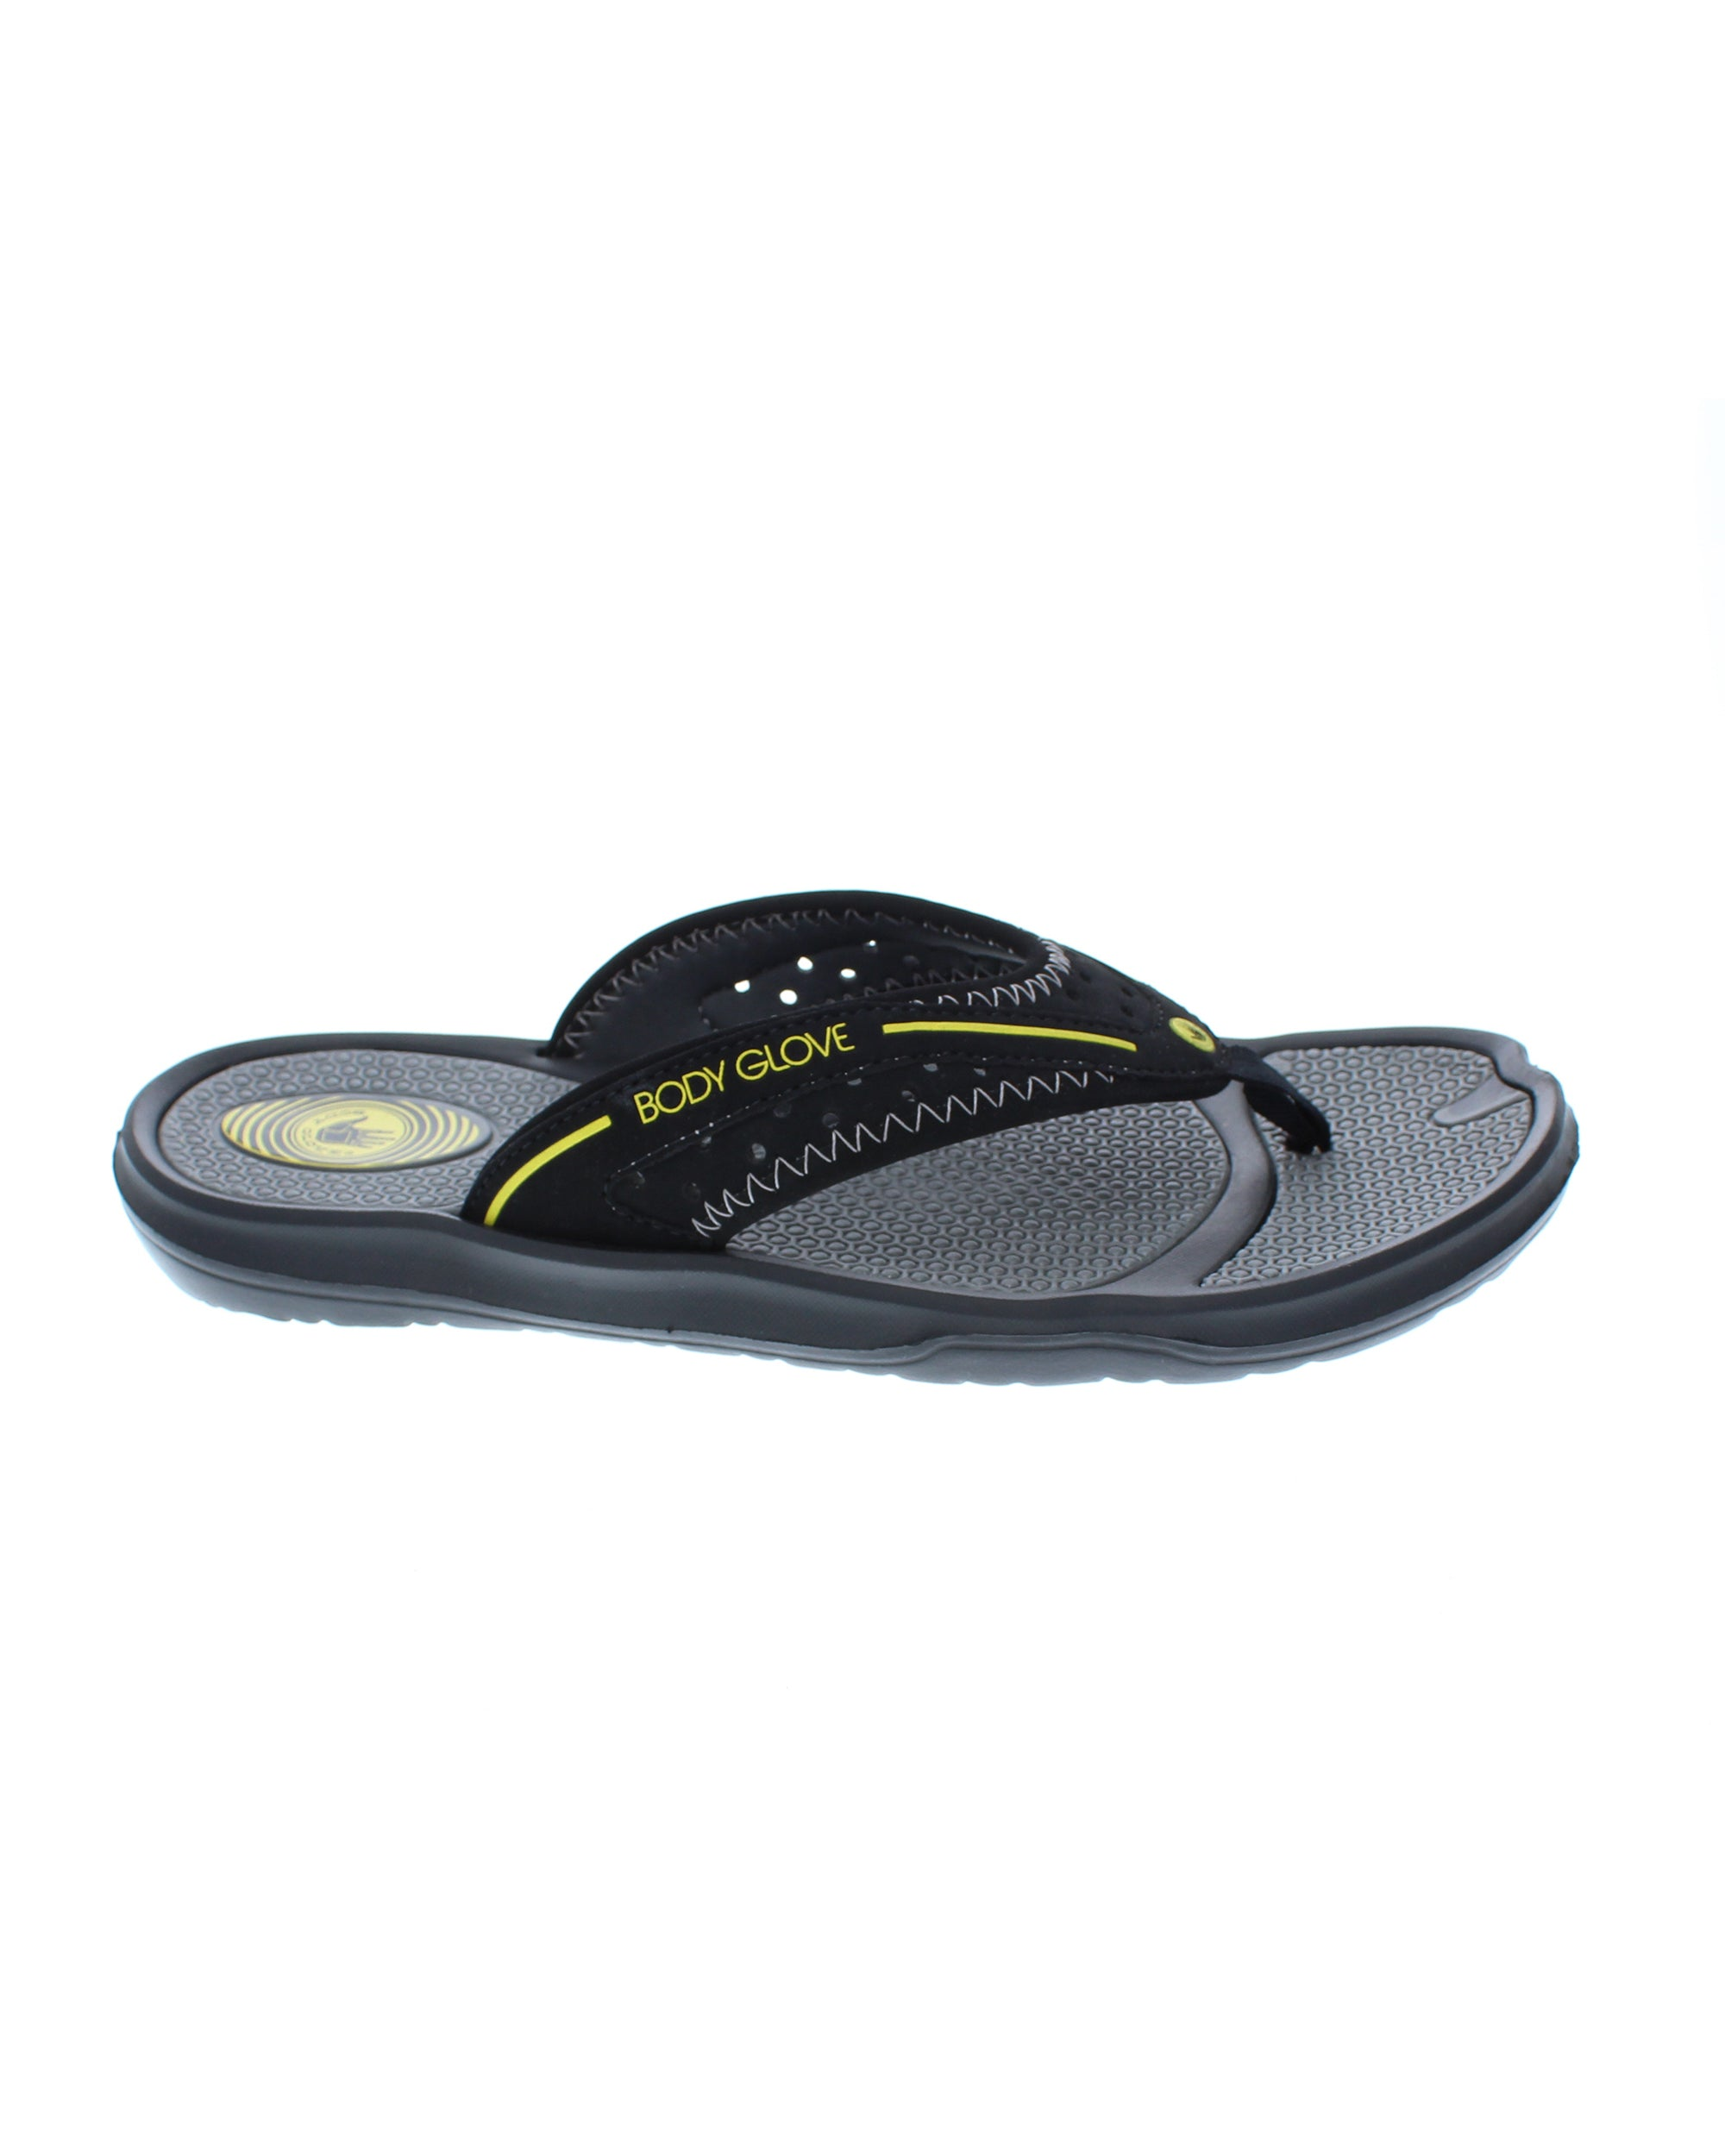 Men's Kona Flip Flop Sandal - Black/Yellow